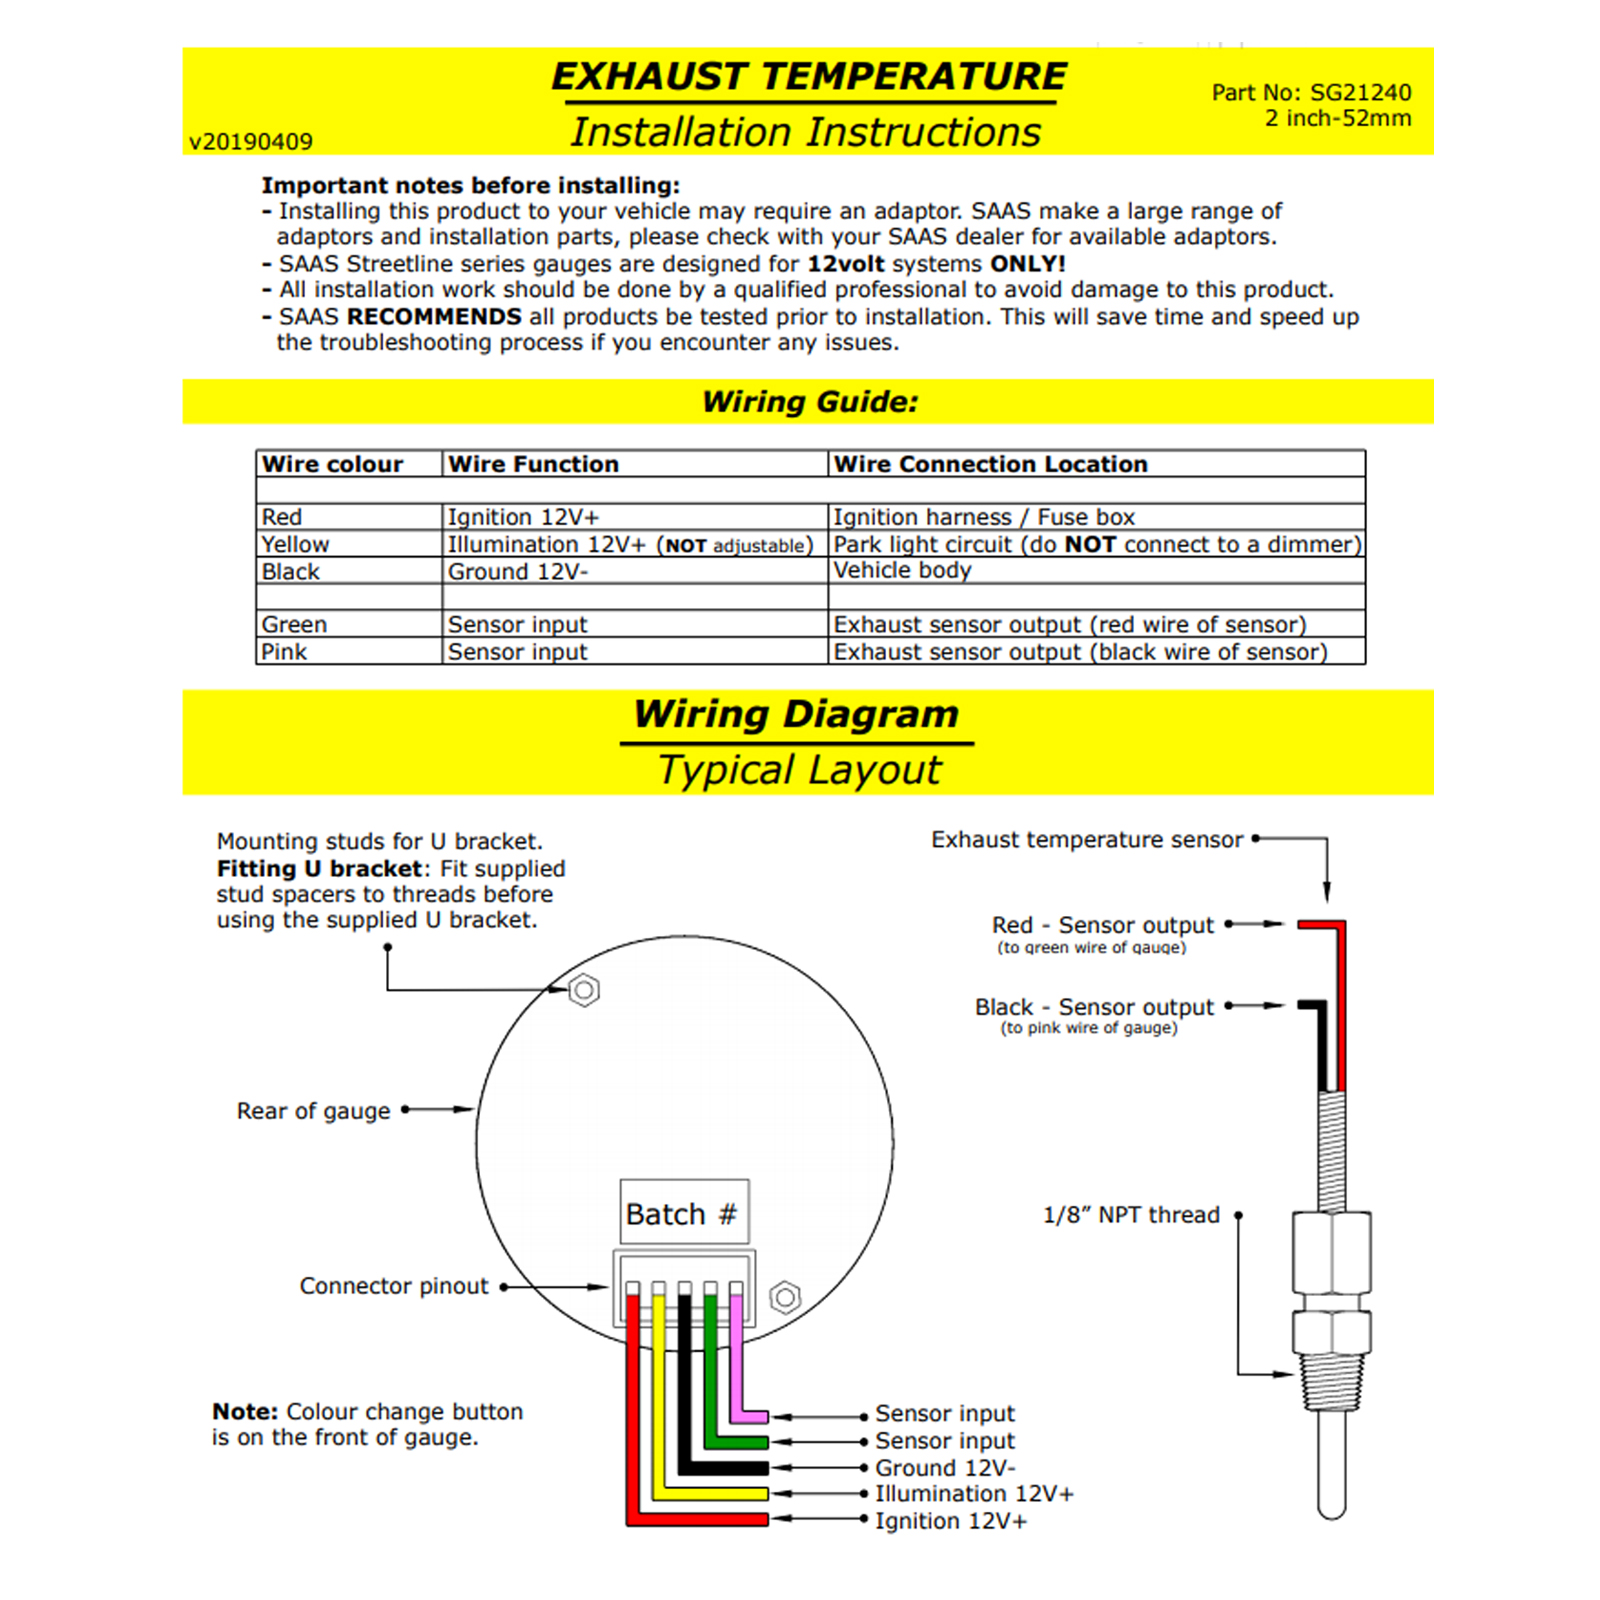 SGP4203 SG21212 SG21240 saas dual volt gauge wiring diagram efcaviation com glowshift fuel pressure gauge wiring diagram at reclaimingppi.co